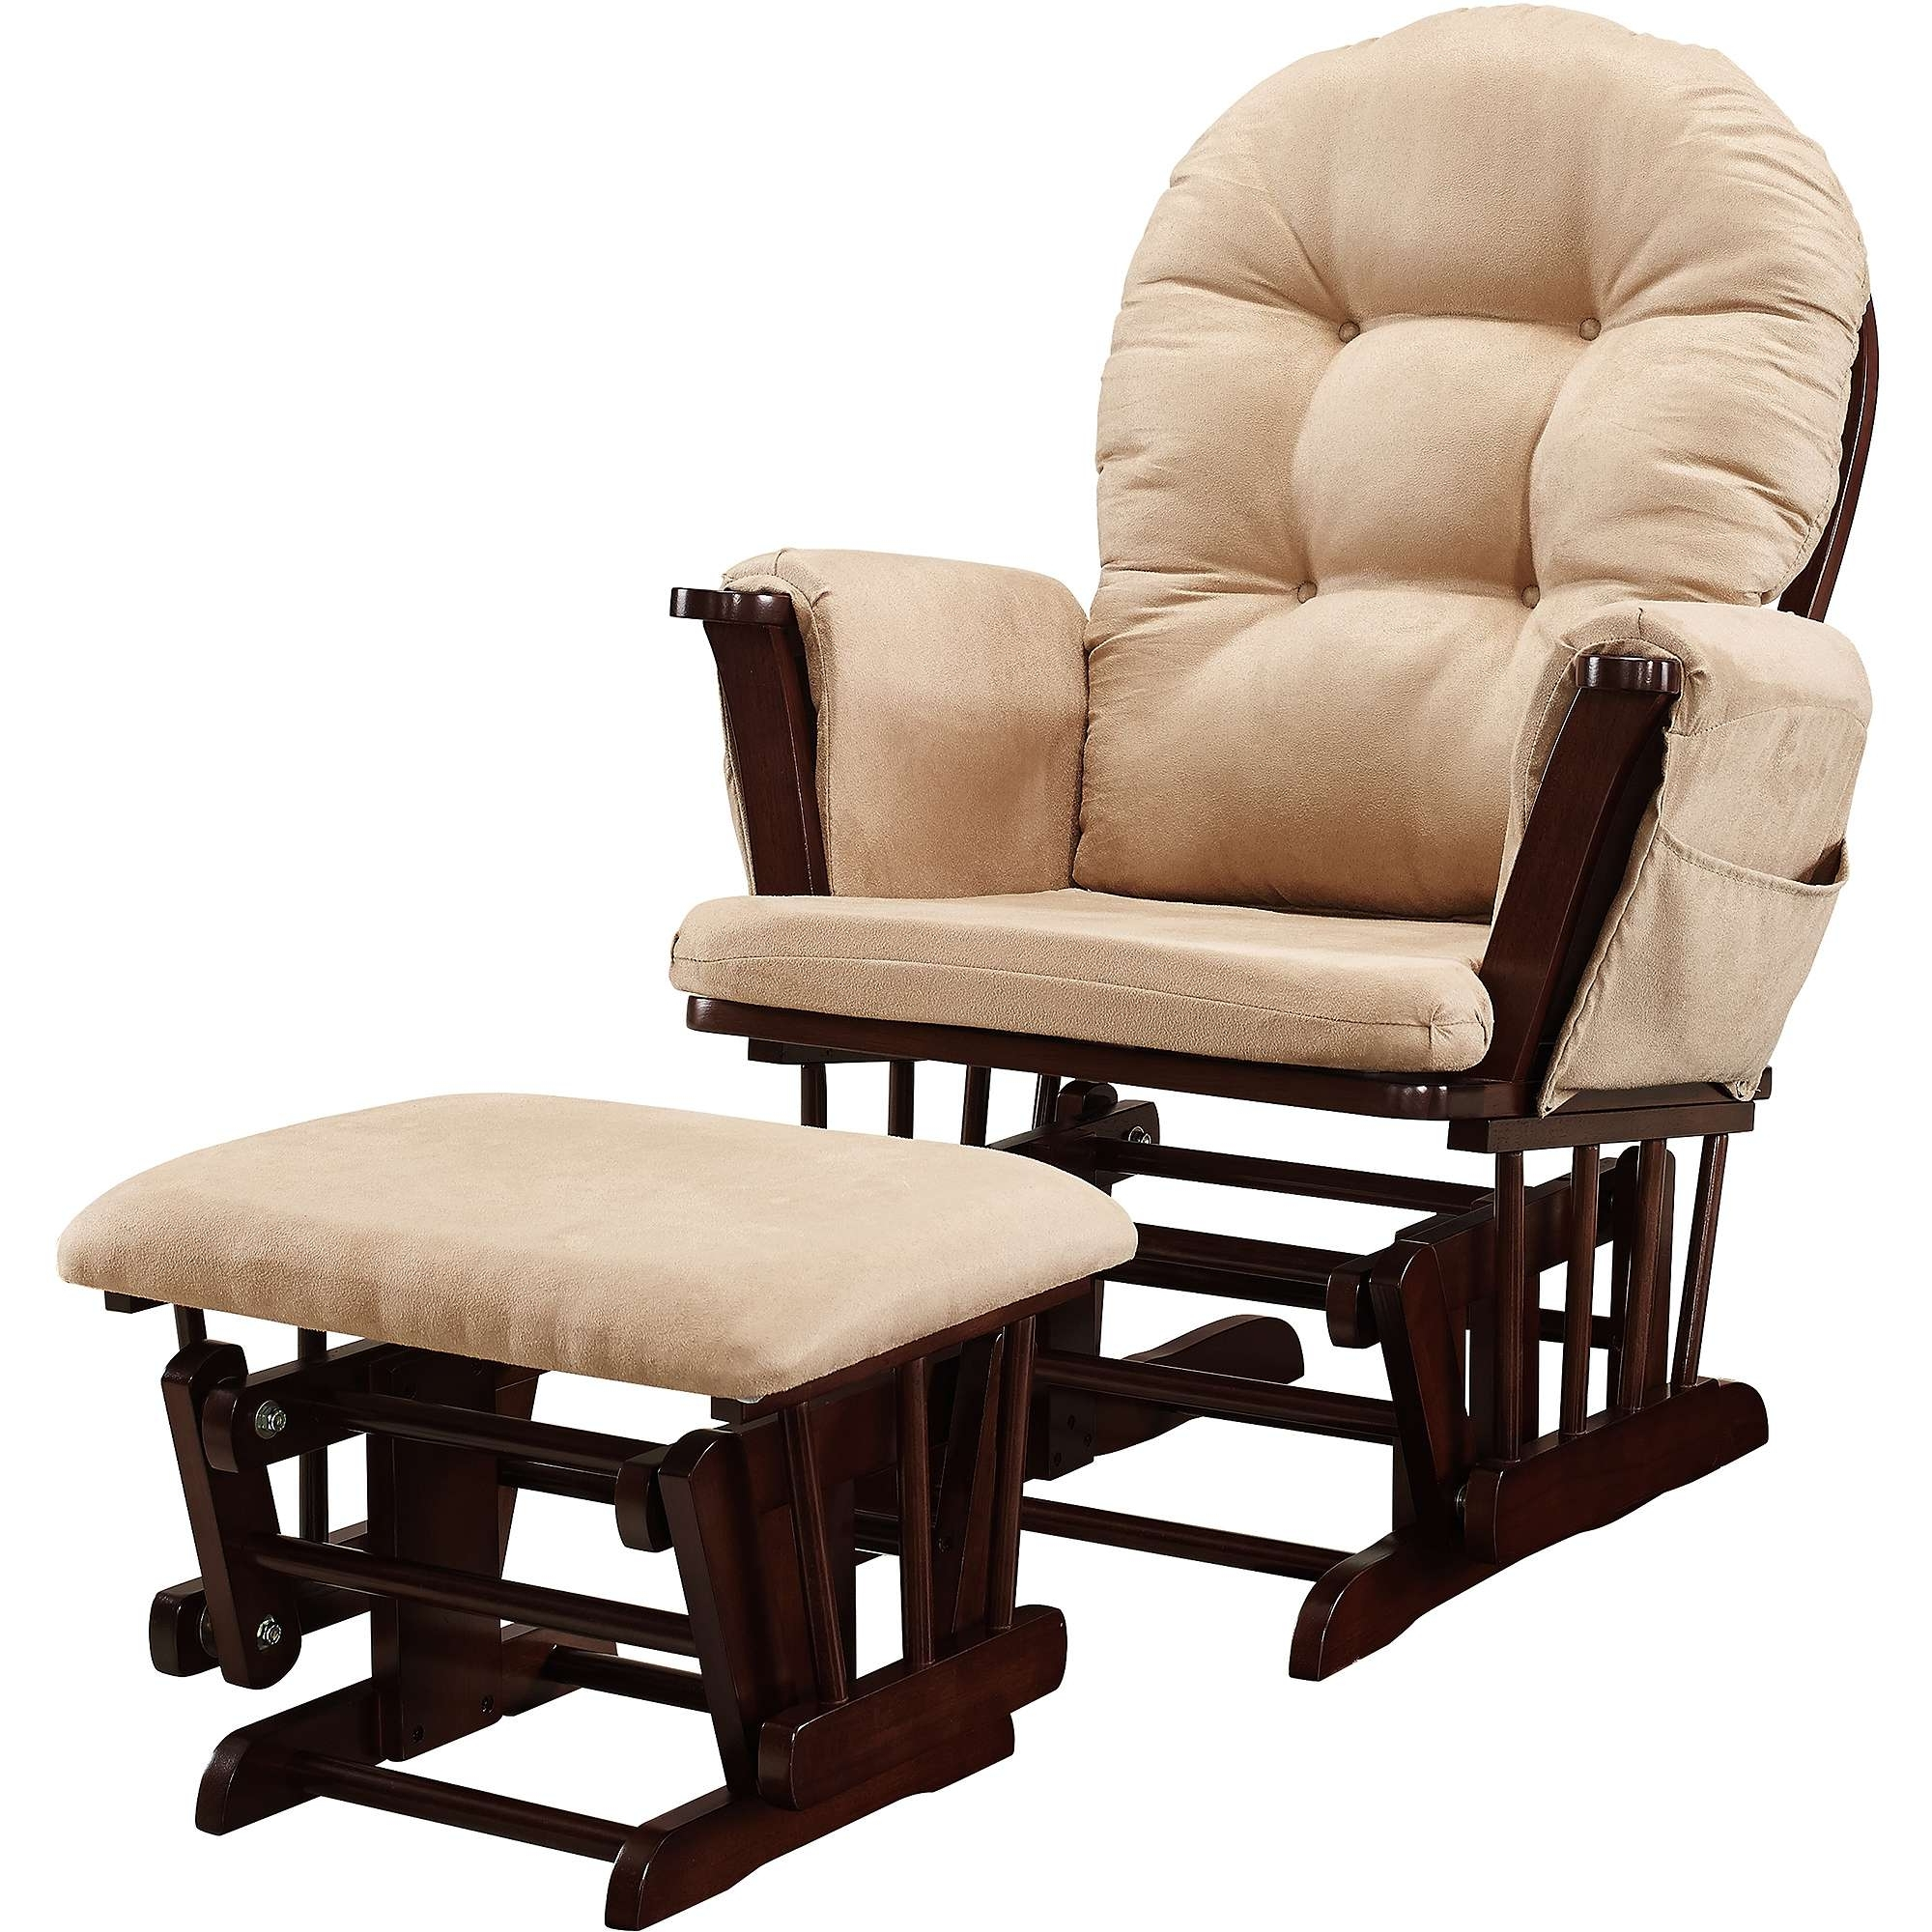 Newest Walmart Rocking Chairs For Glider Rocking Chair Cushions Lovely Walmart Glider Chair Cushions (View 11 of 20)